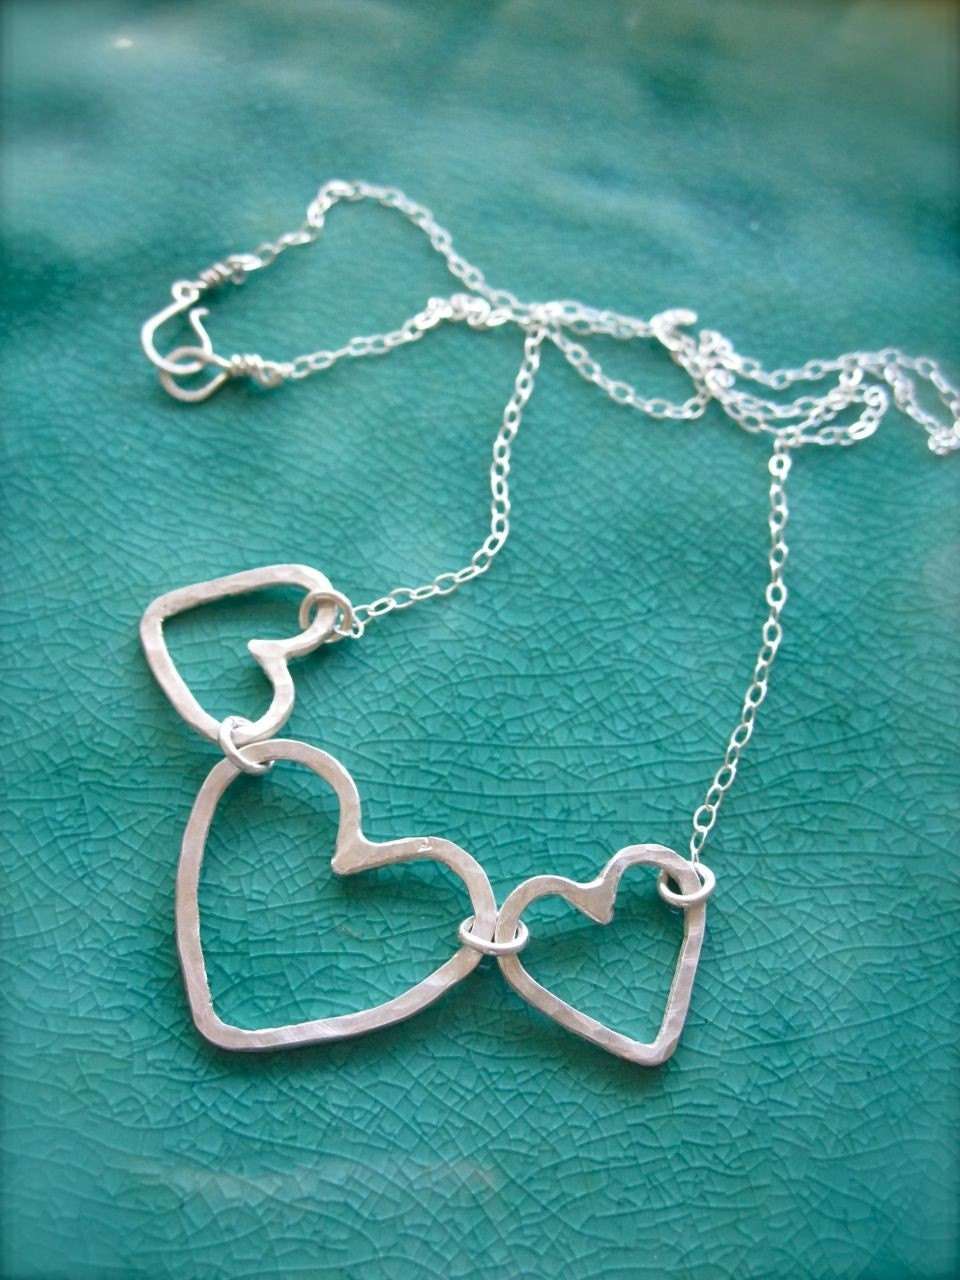 String of Hearts - Sterling silver heart necklace